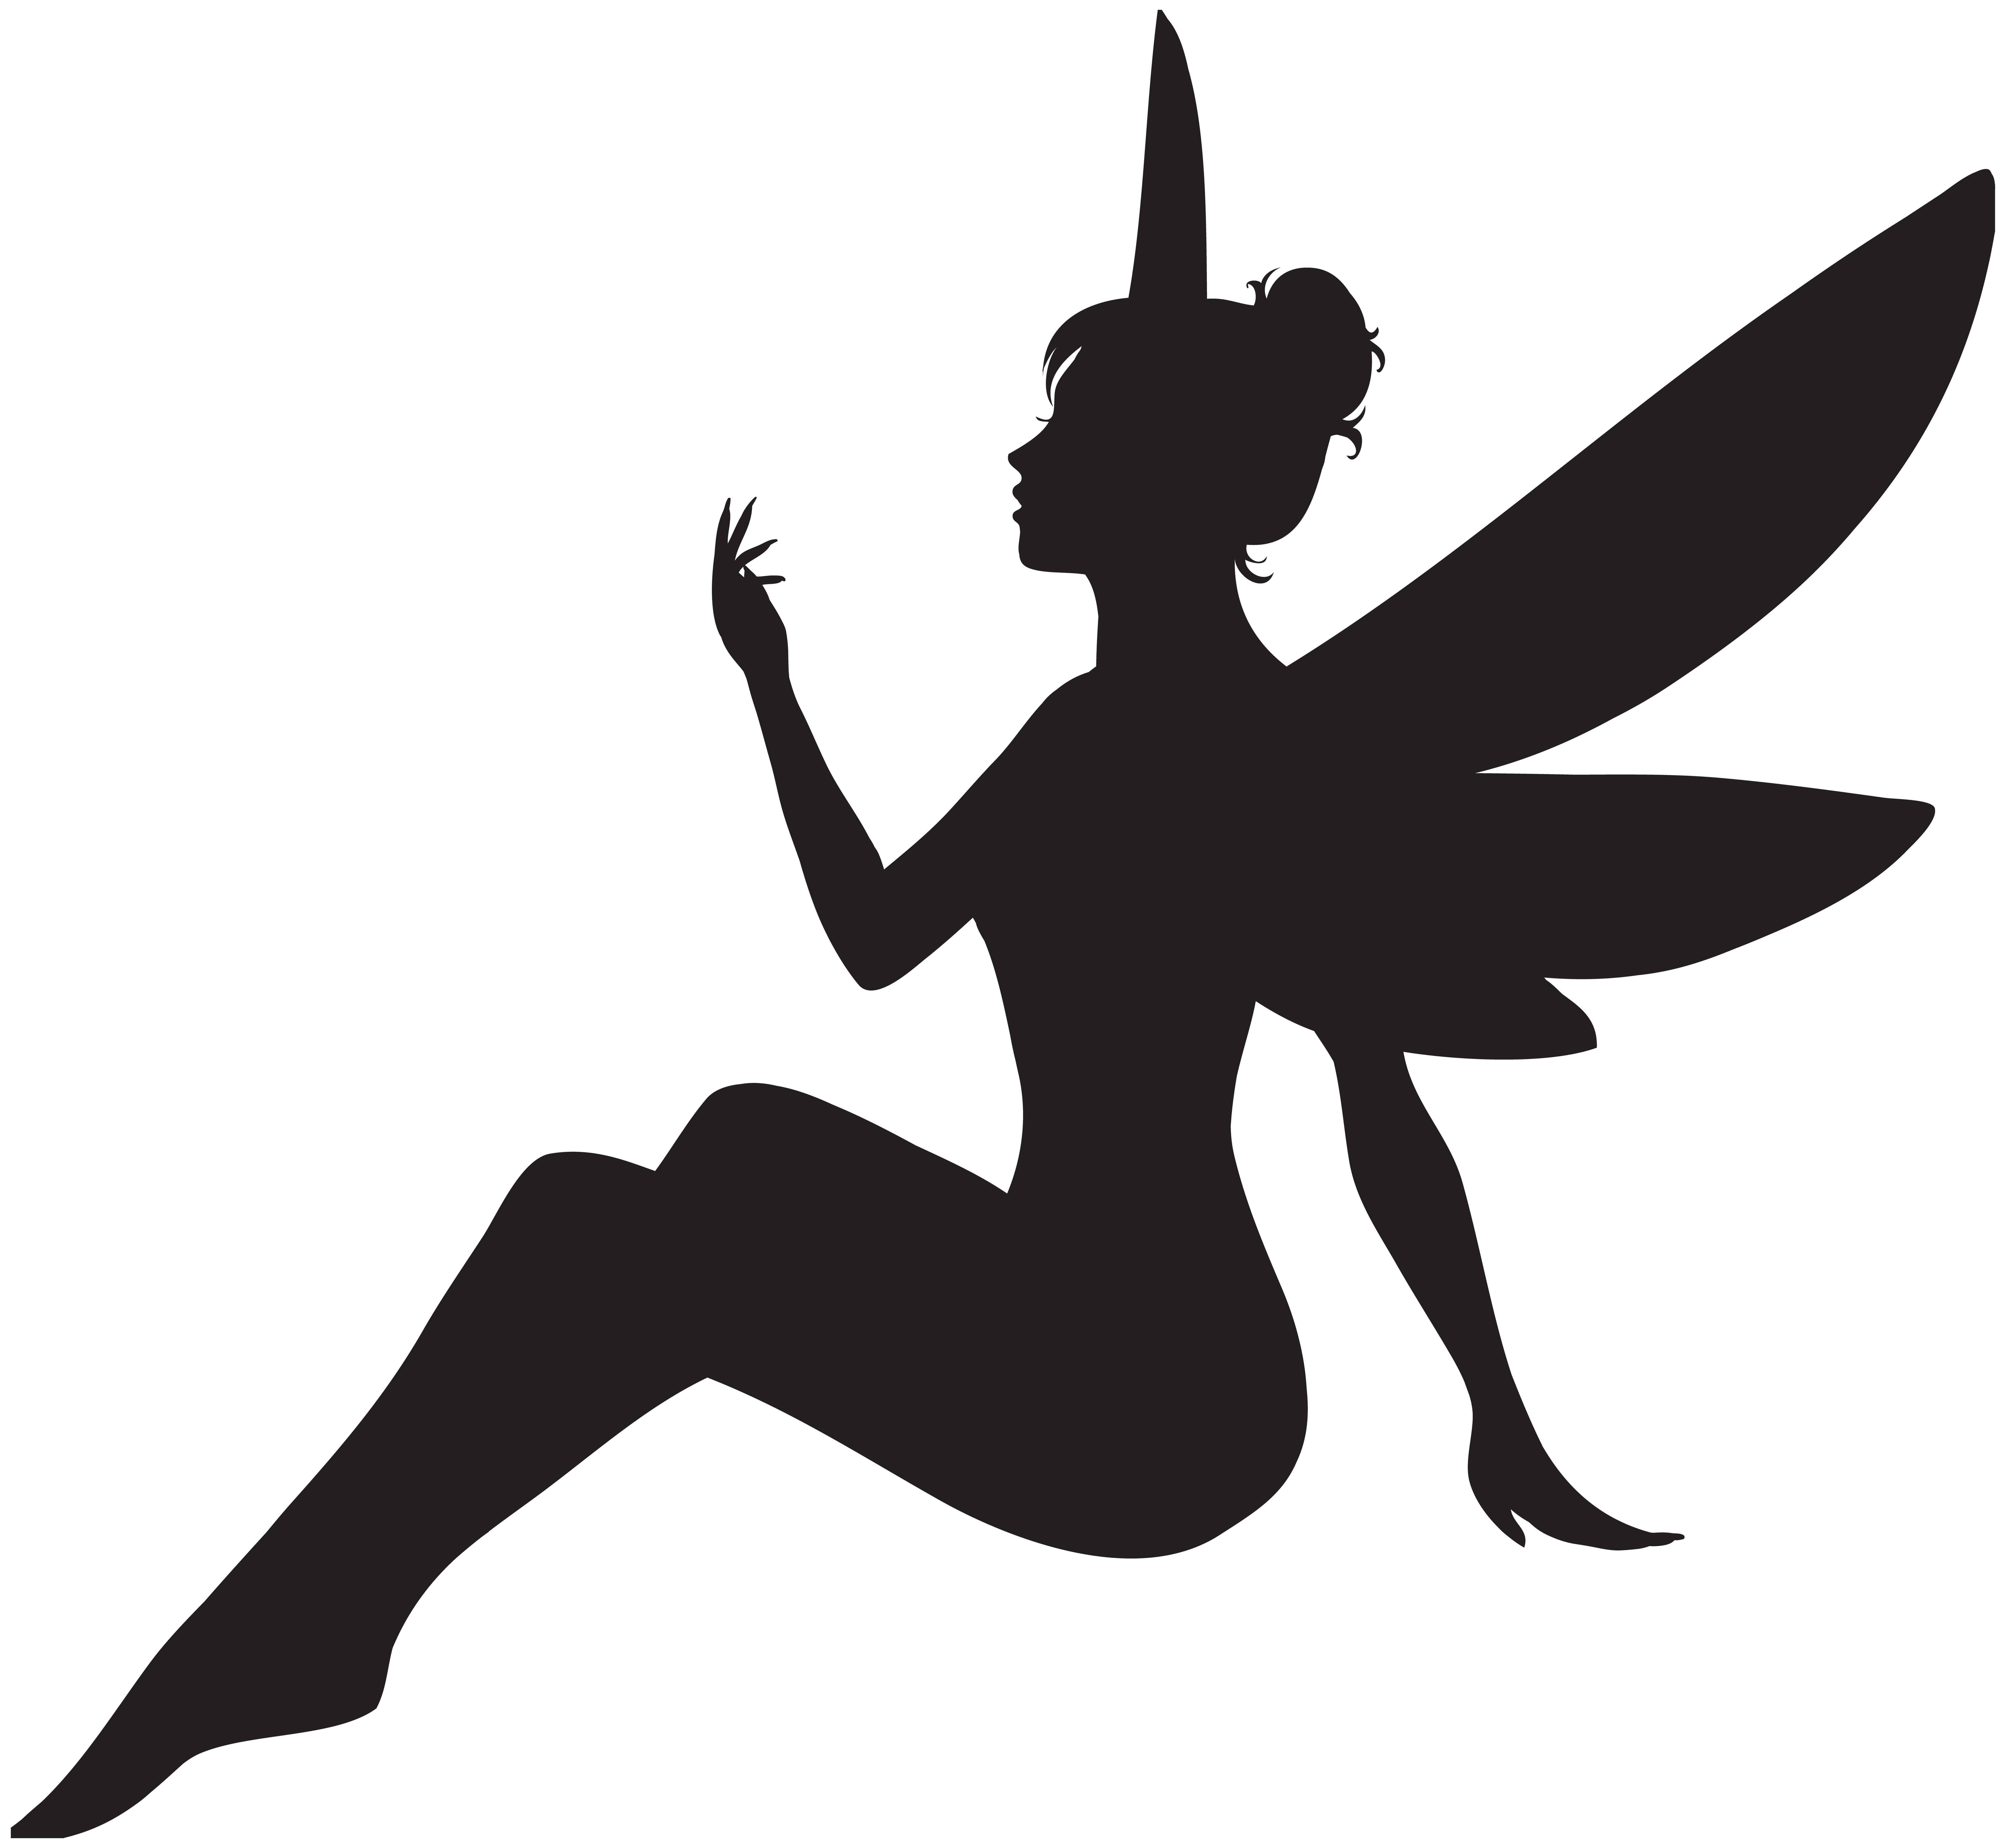 Fairy silhouette png. Clip art image gallery